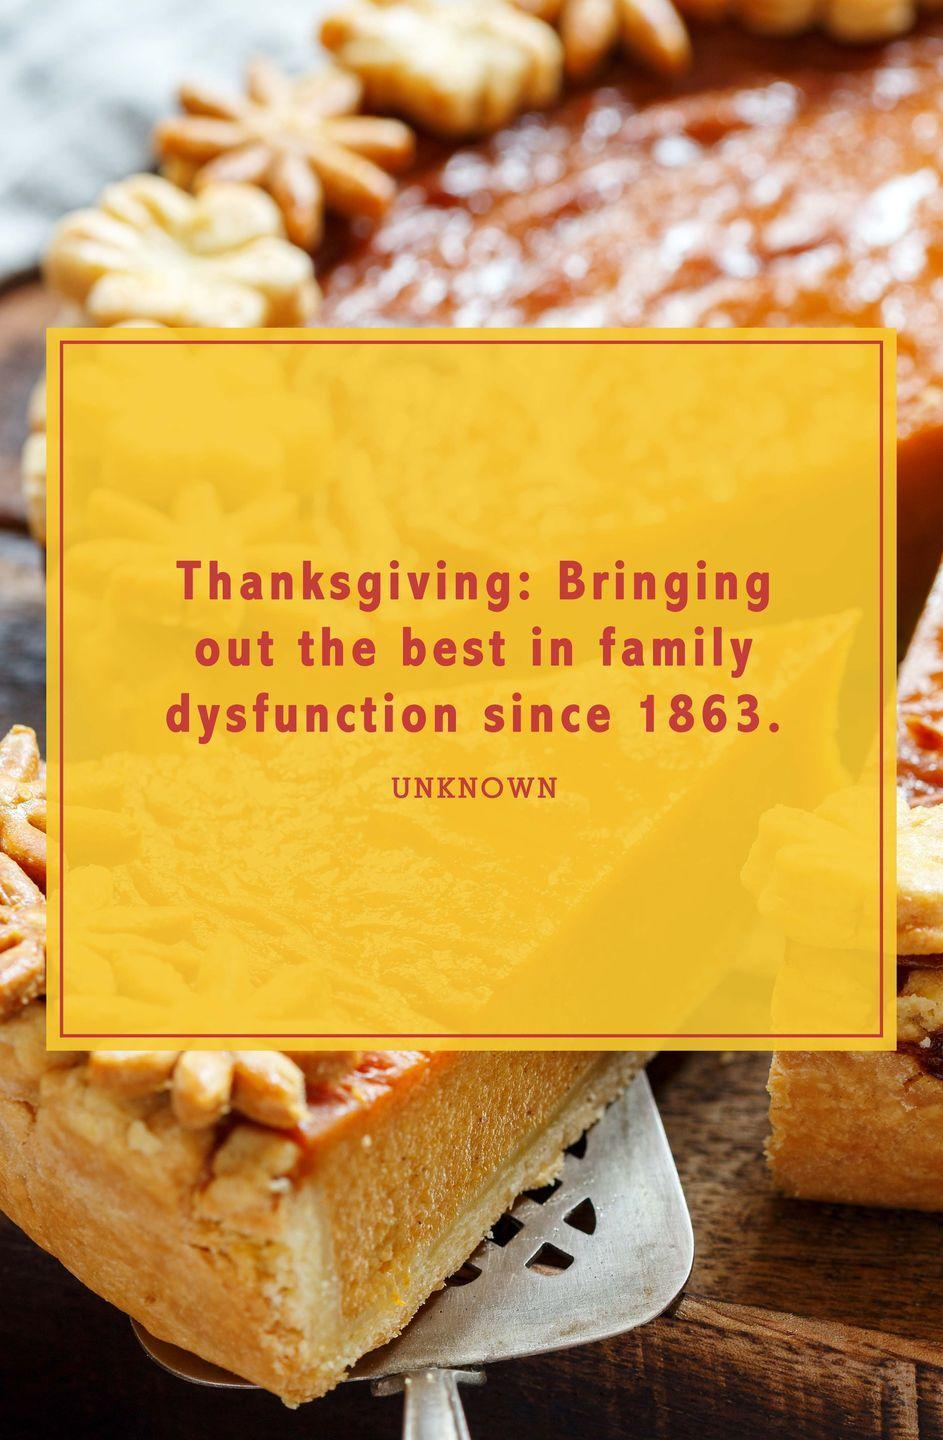 "<p>""Thanksgiving: Bringing out the best in family dysfunction since 1863.""</p>"